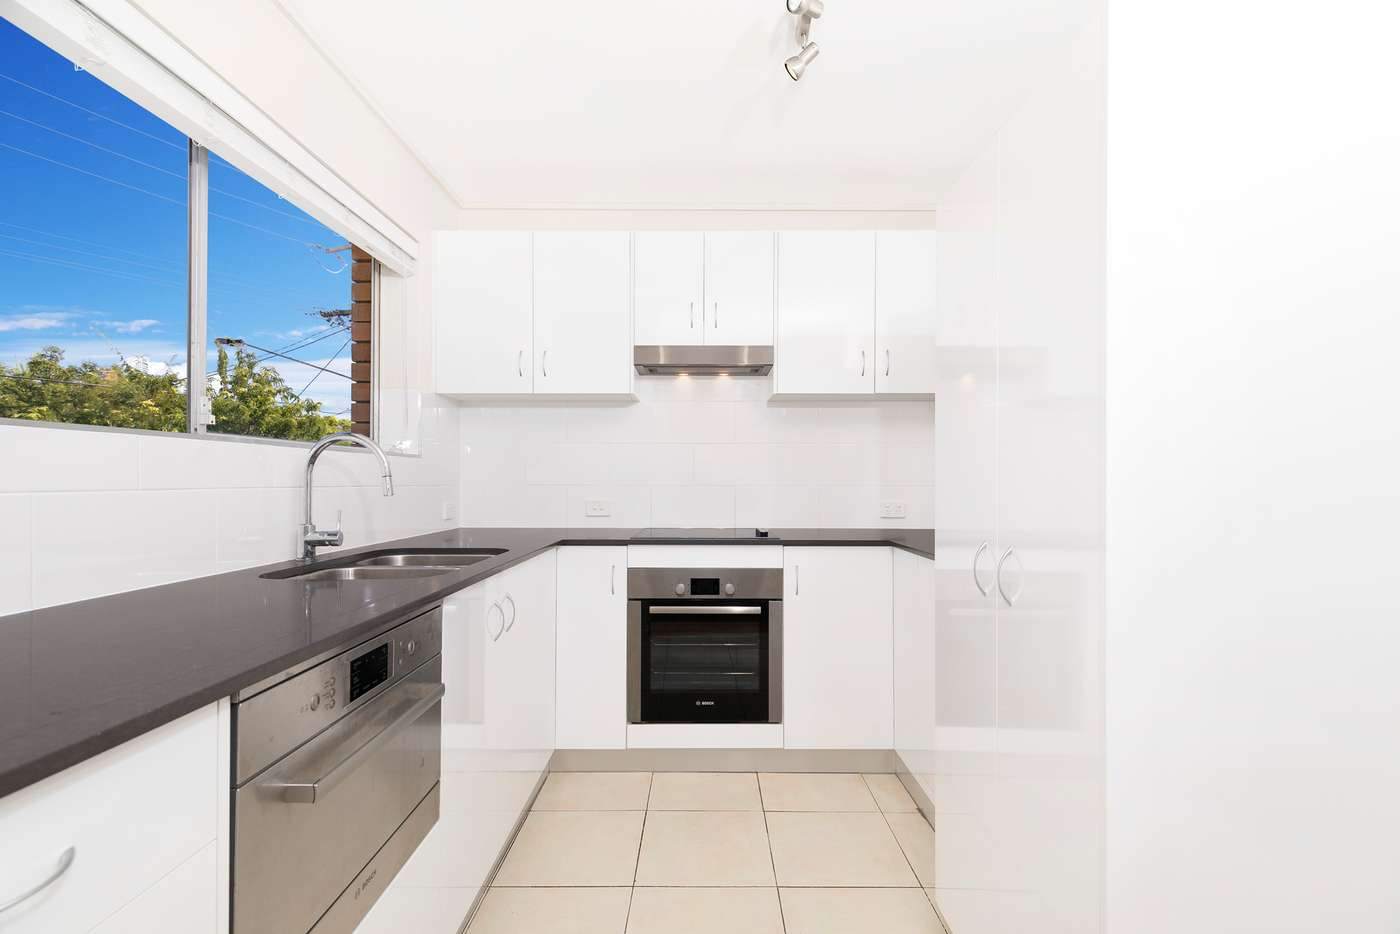 Main view of Homely apartment listing, 2/2 Prospect Terrace, Red Hill QLD 4059